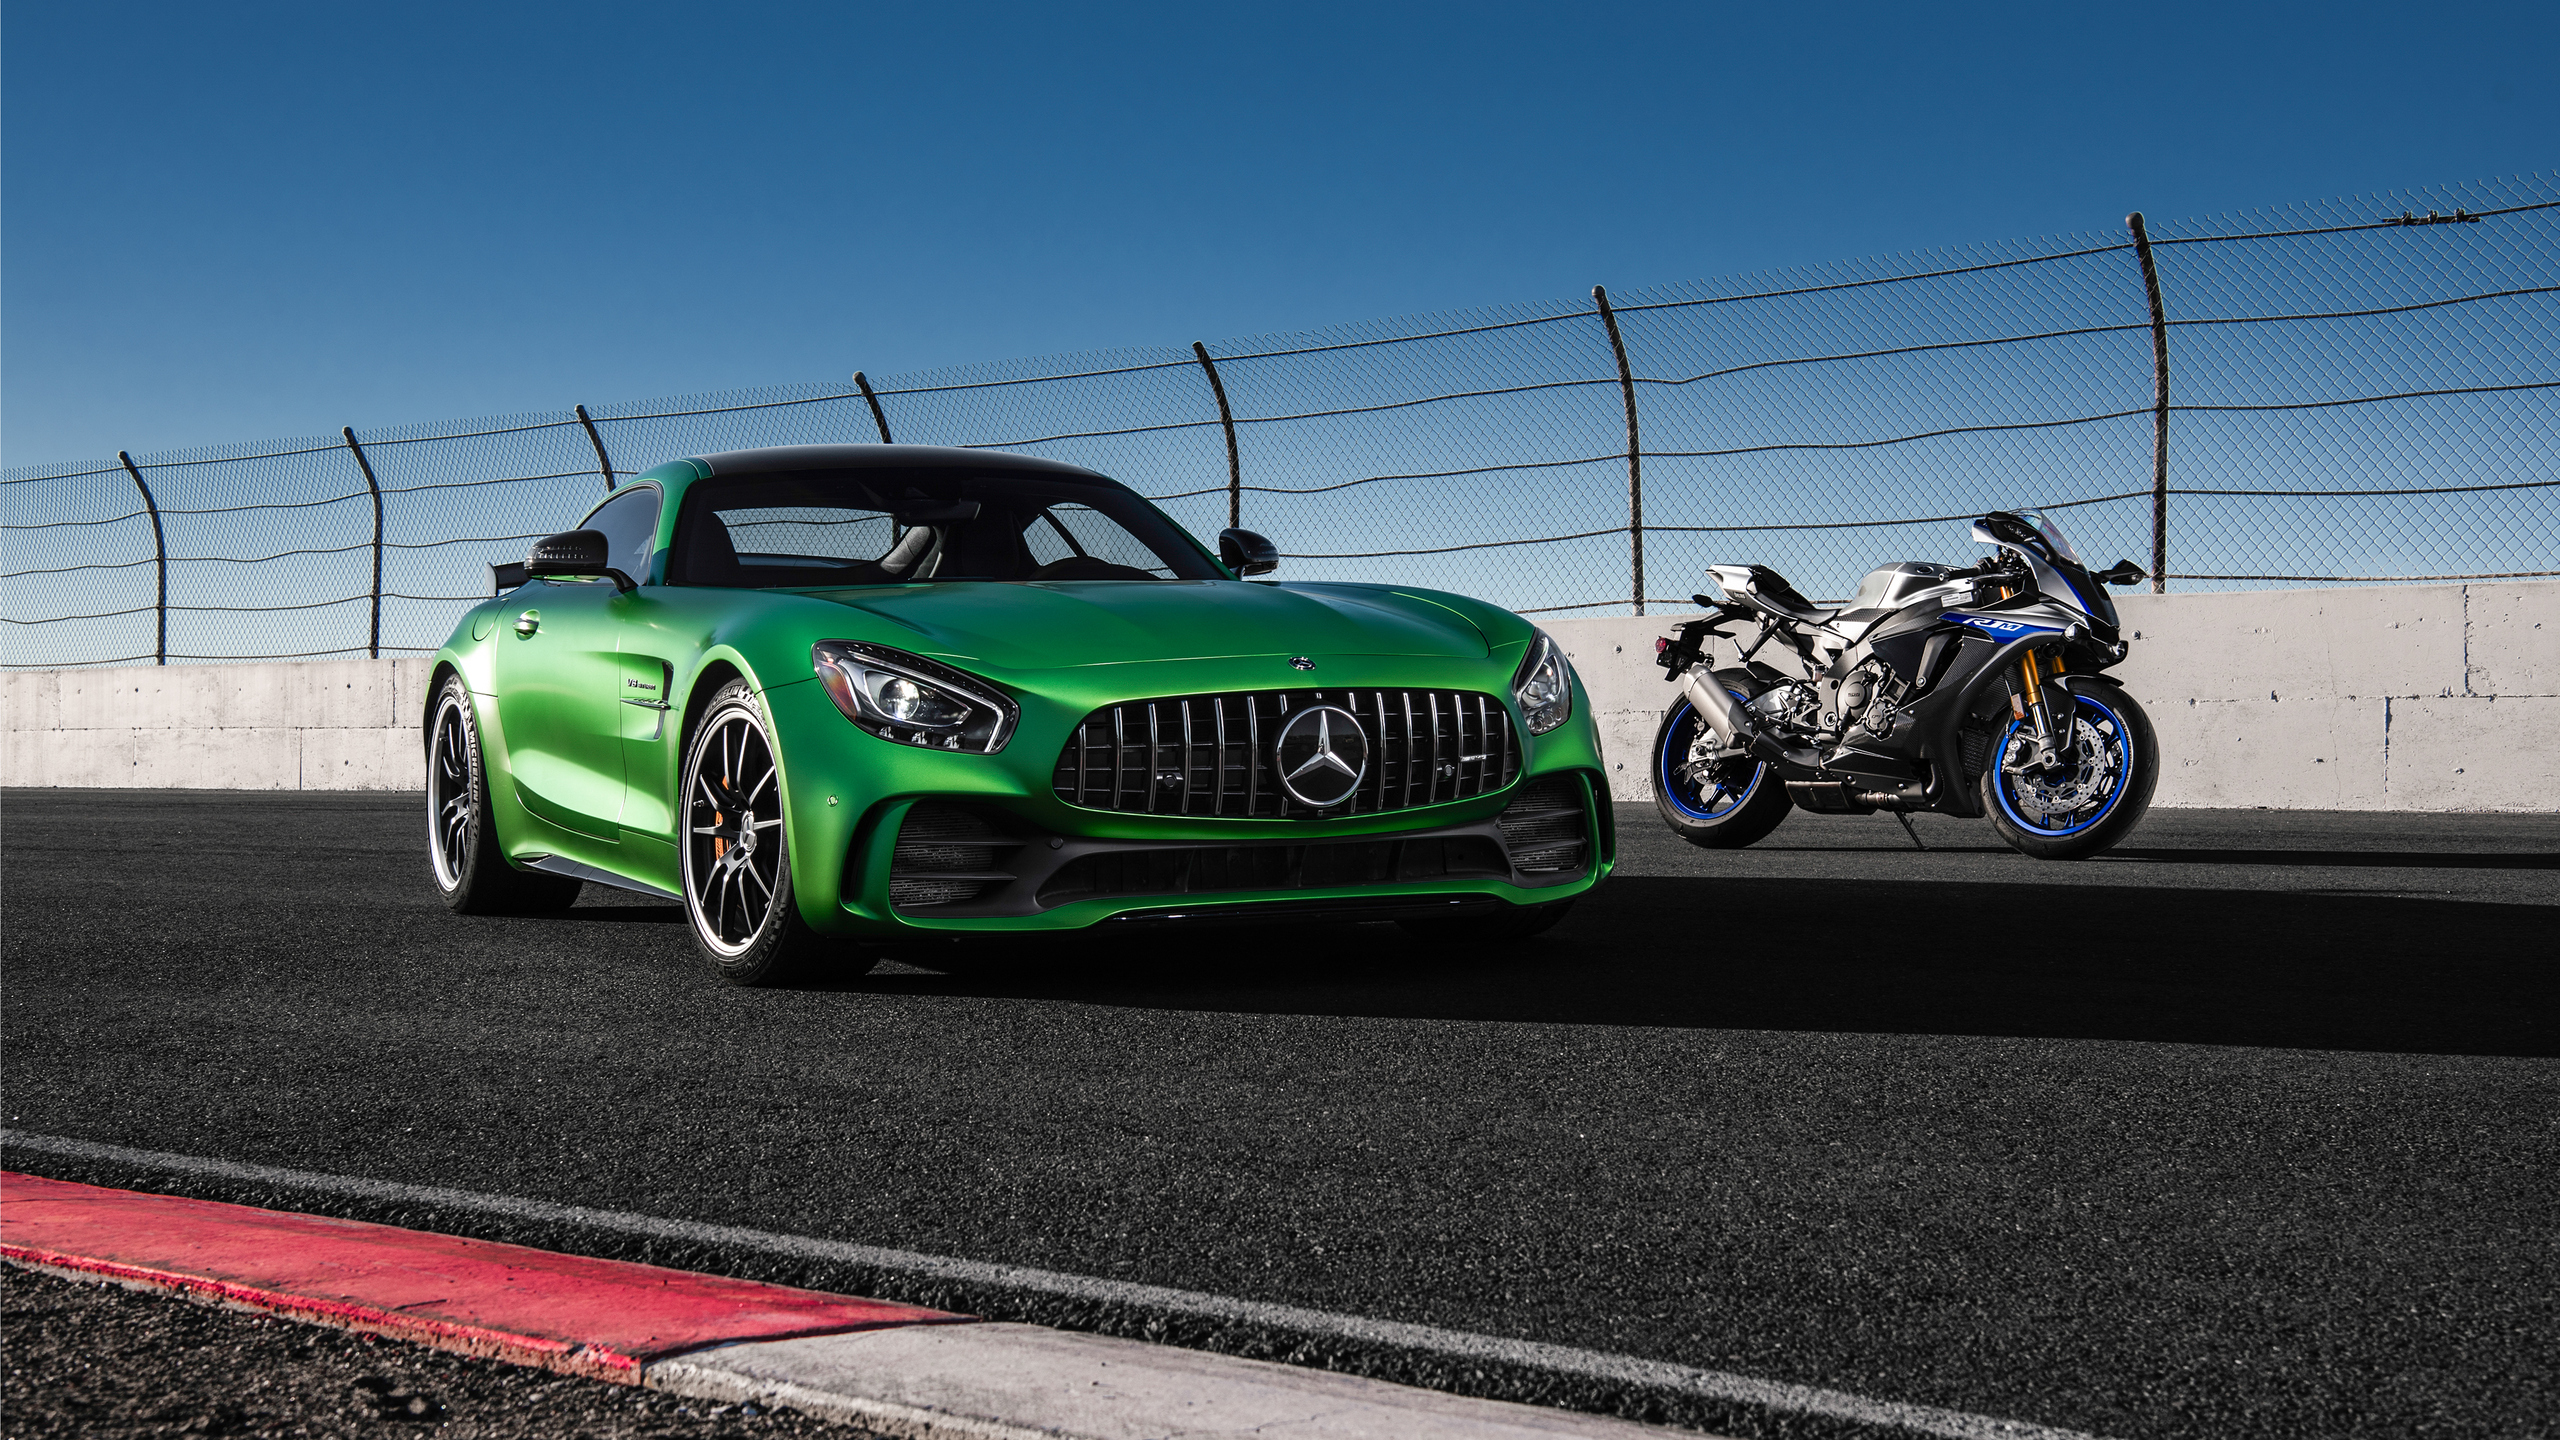 mercedes-amg-gtr-and-yamaha-r1-b2.jpg